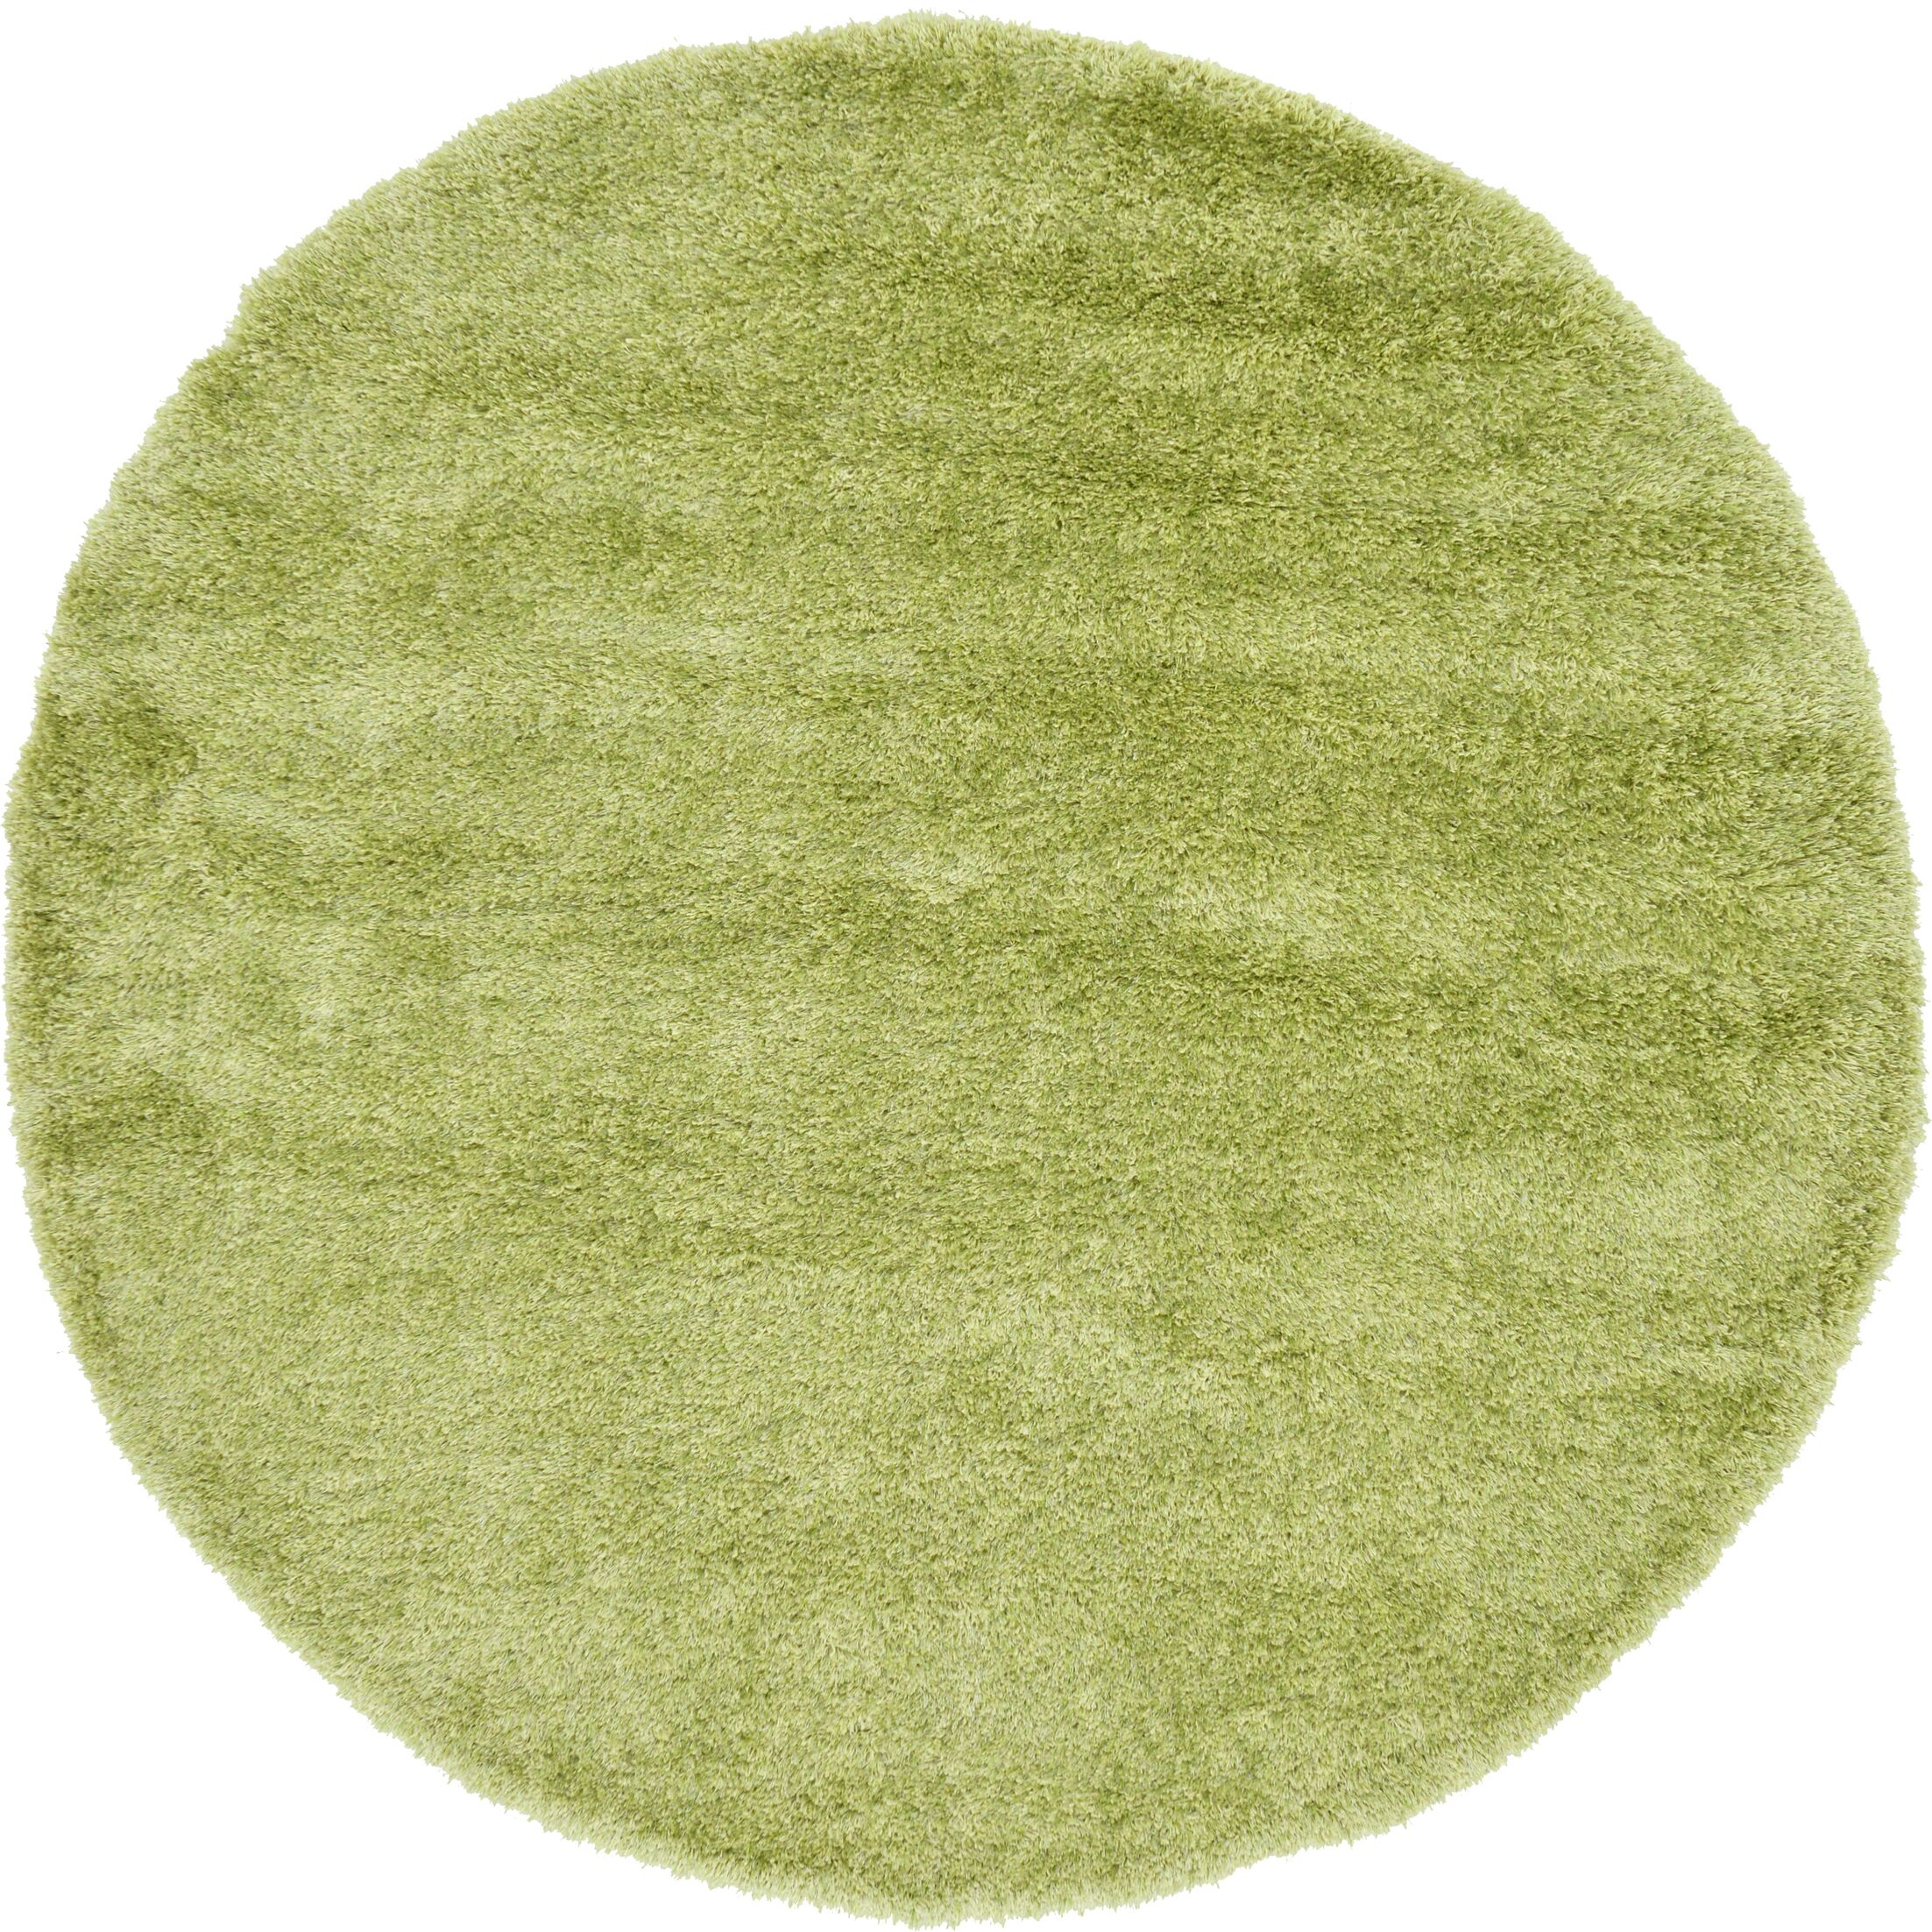 Evelyn Cedar Green Area Rug Rug Size: Round 6'